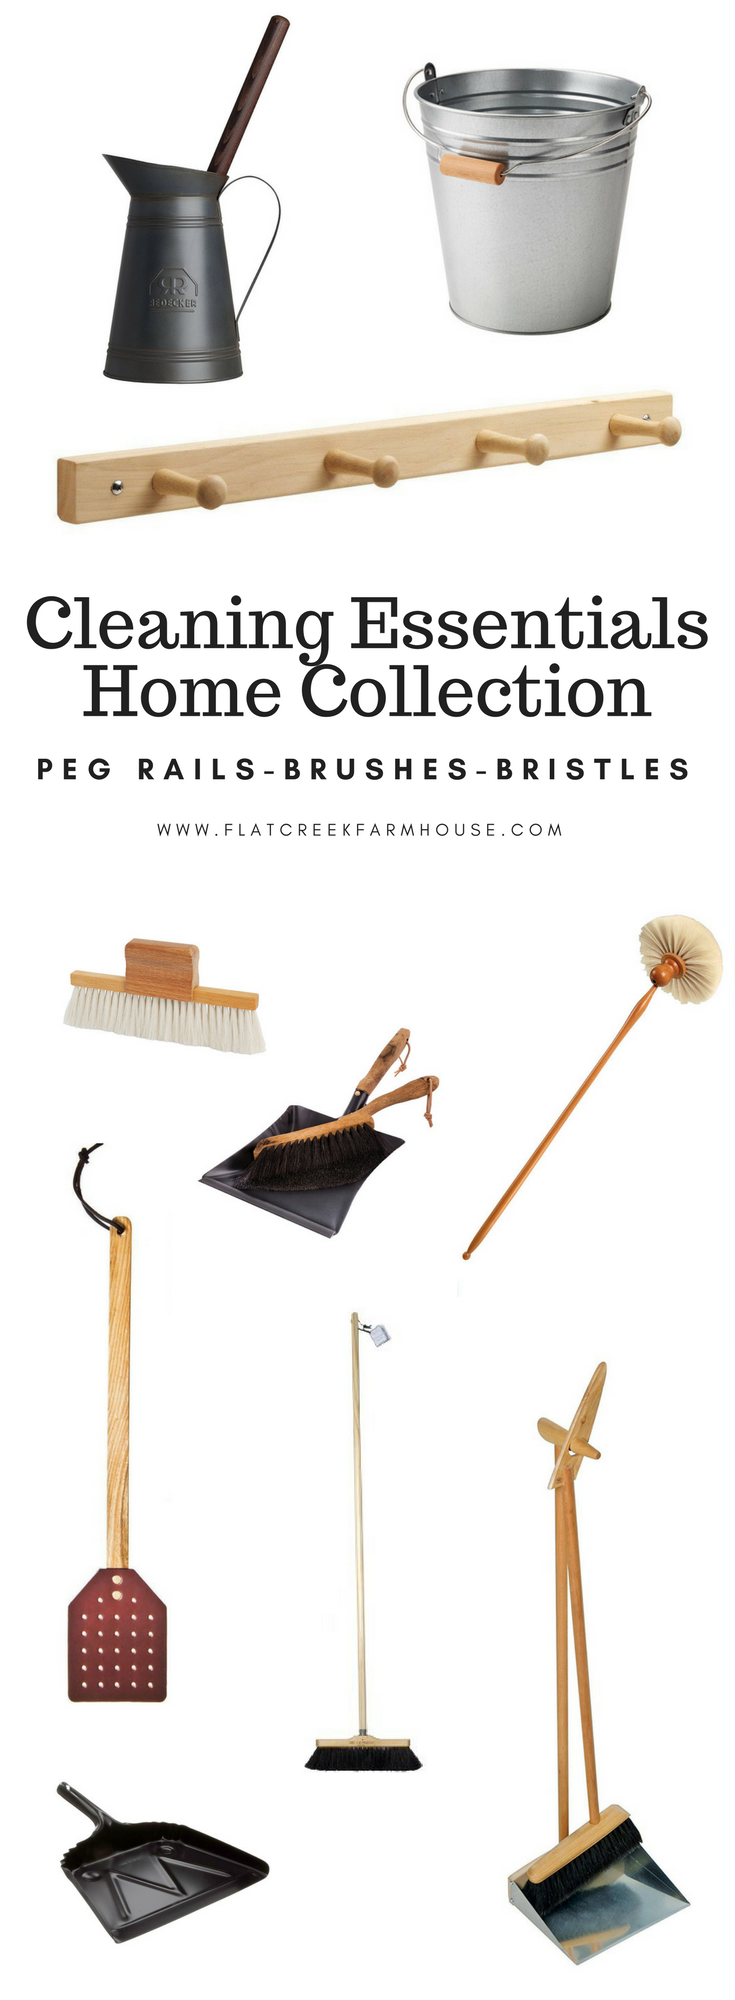 Cleaning Essentials for an earth friendly home. Natural brooms and bristles that are sustainable and beautiful. Use a peg rack to keep all of your cleaning supplies organized.